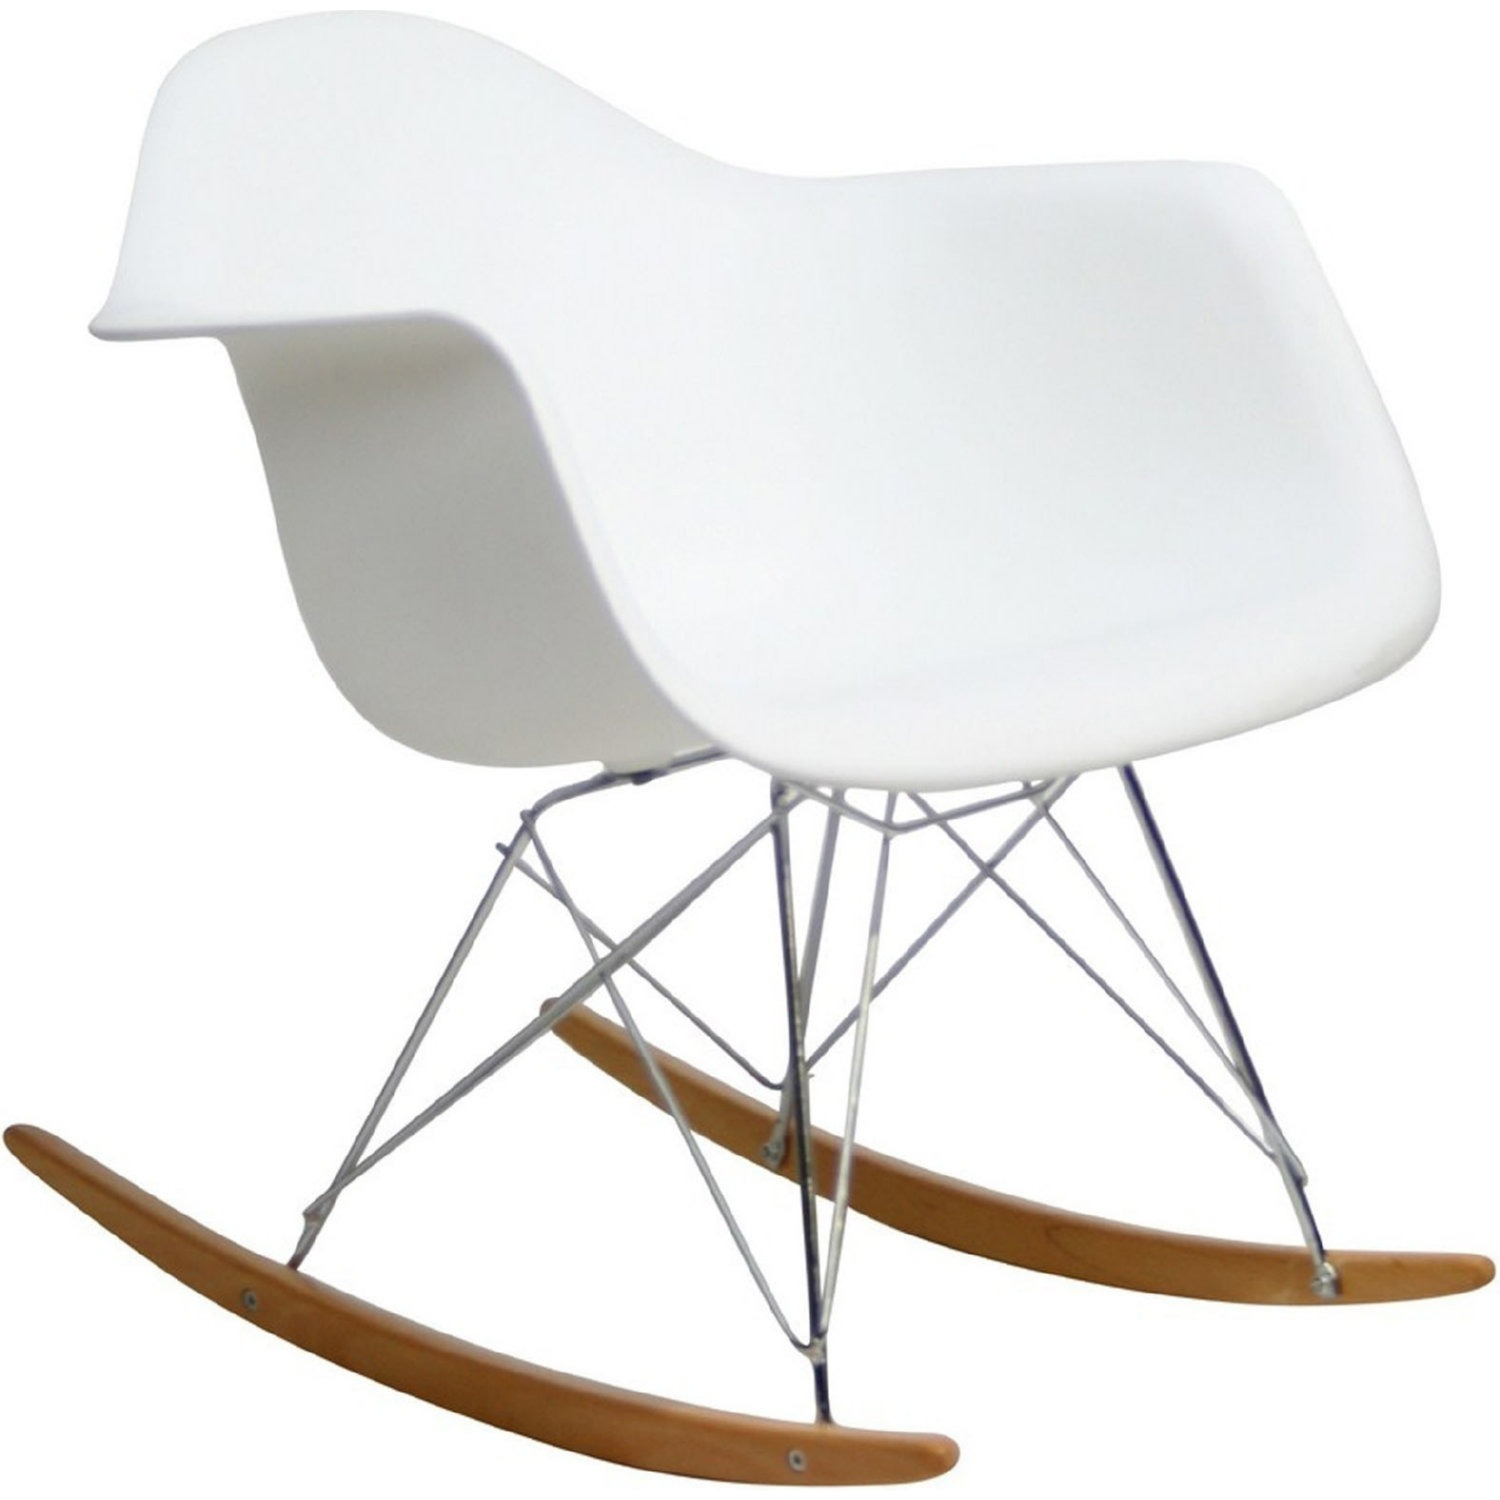 Accent Chair In White Plastic W/ Chrome Finish - image-0